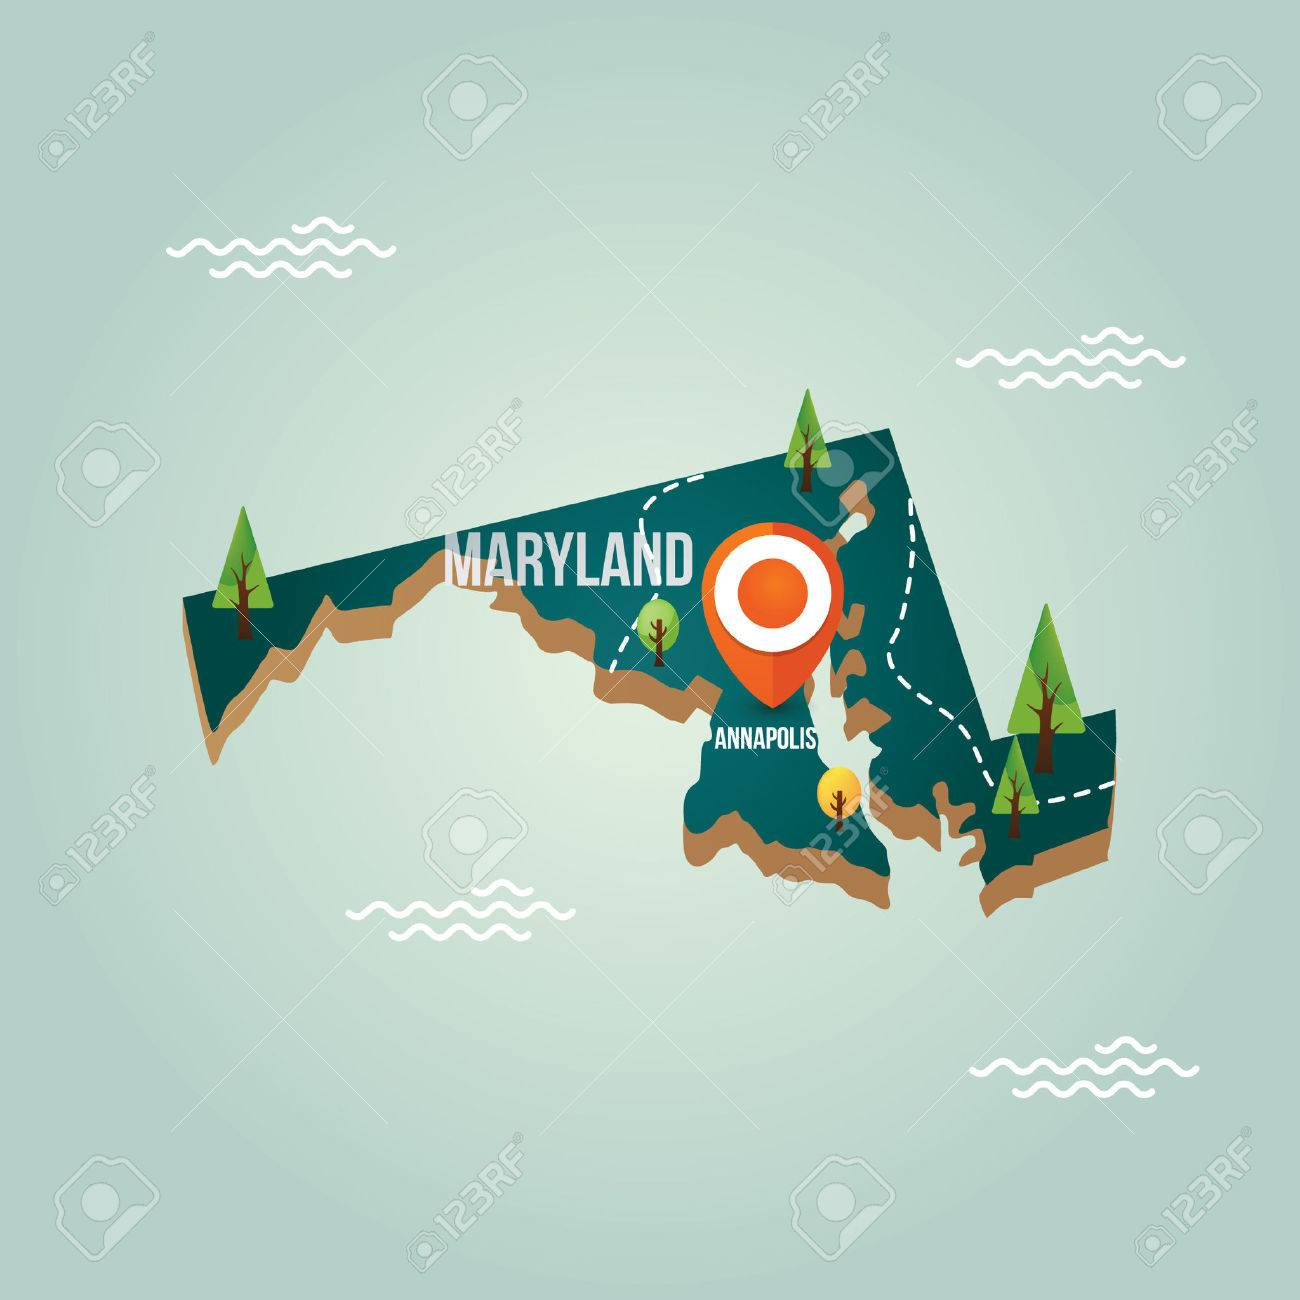 Maryland map with capital city on graffiti of maryland, layout of maryland, landscape of maryland, graph of maryland, icons of maryland, clipart of maryland, food of maryland, drawing of maryland, cartoon of maryland,